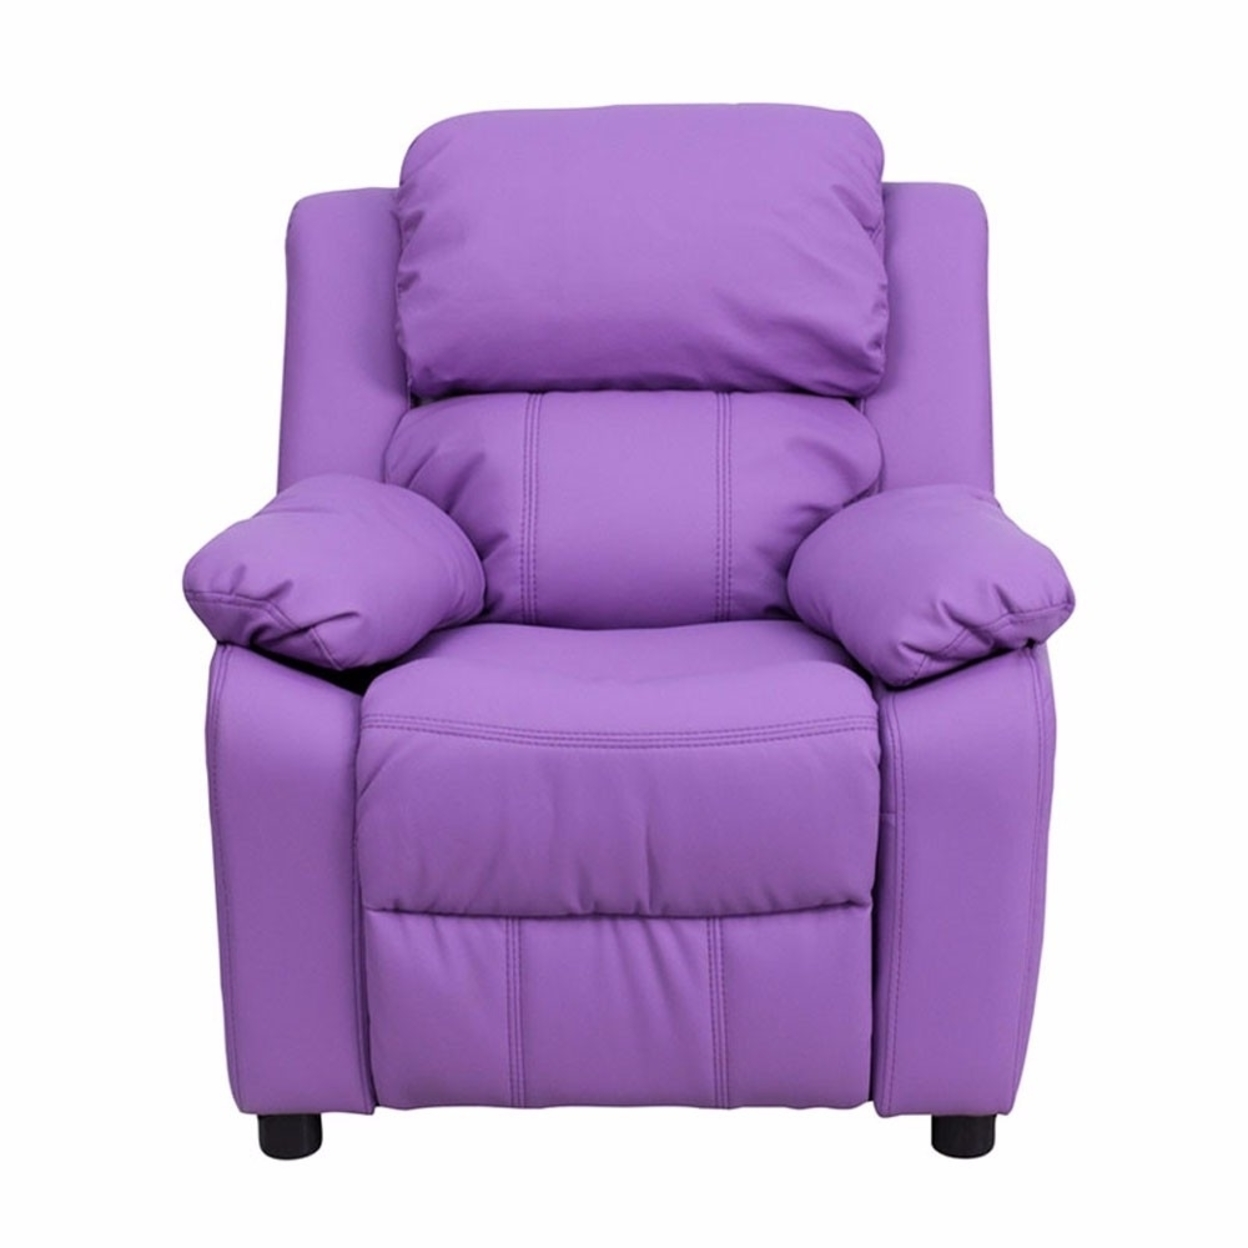 Flash Furniture Deluxe Heavily Padded Contemporary Lavender Vinyl Kids Recliner with Storage Arms [863-Bt-7985-Kid-Lav-Gg] 59e460122a00e43b6679adcb